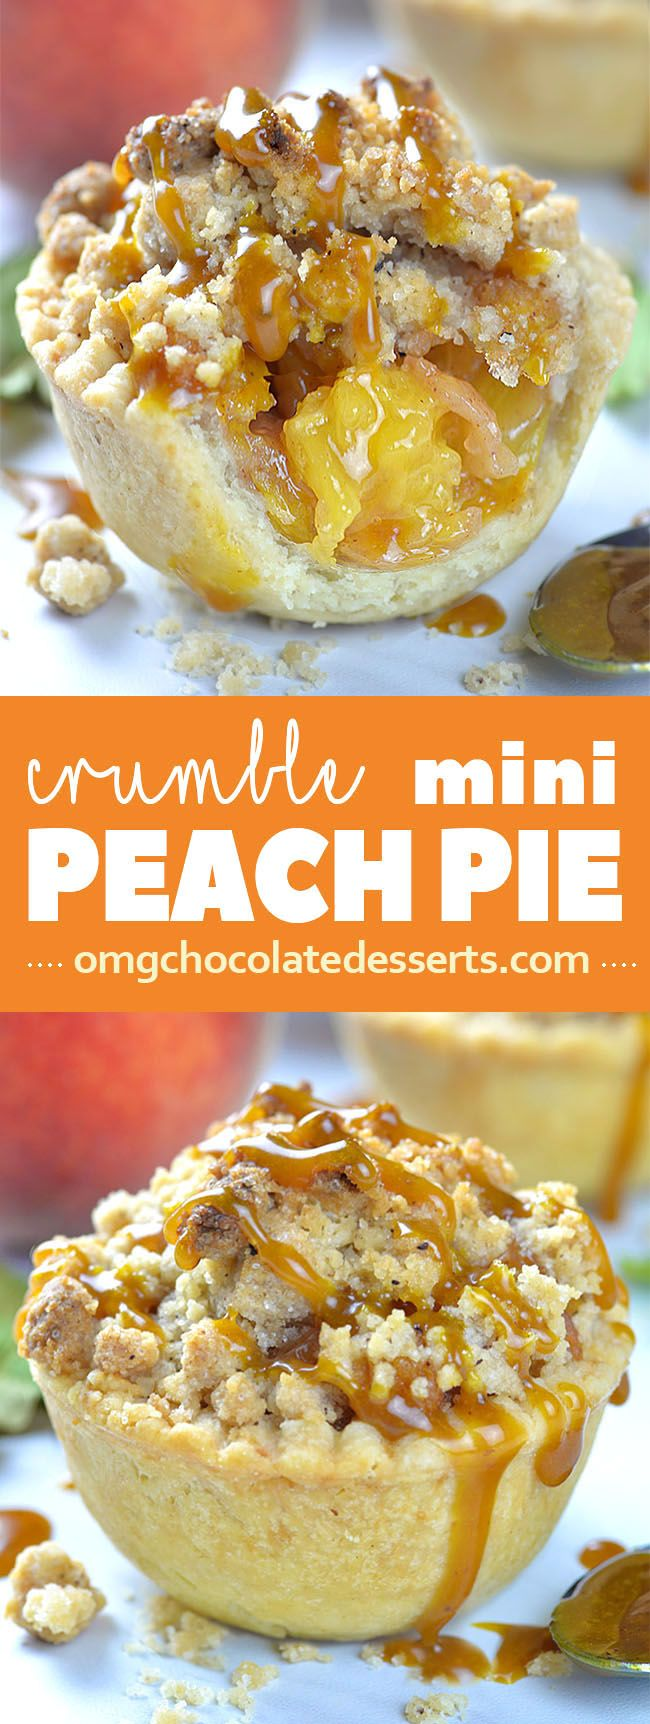 Crumble Mini Peach Pie is individual portion of delicious crumble pie loaded with fresh peaches and caramel sauce.